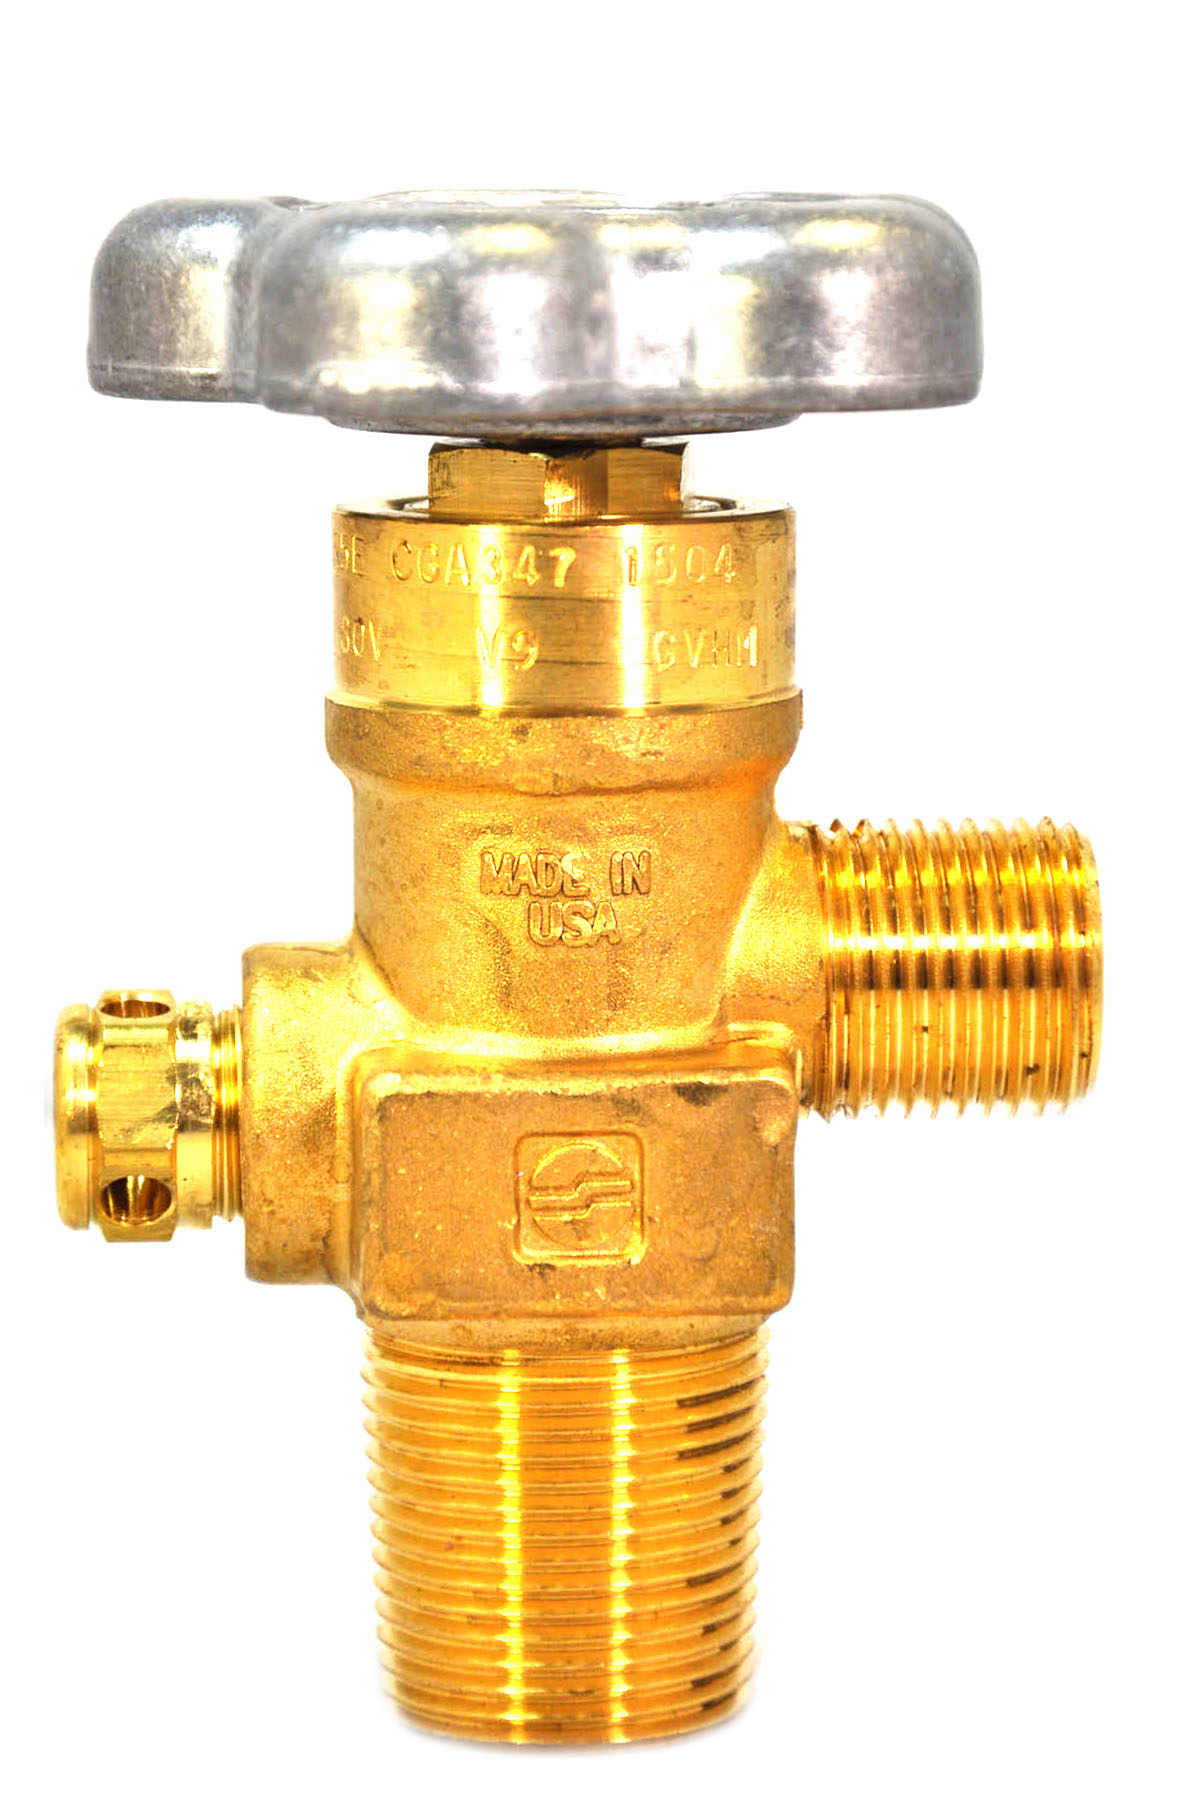 GSHV Valves - Ultra High Pressure